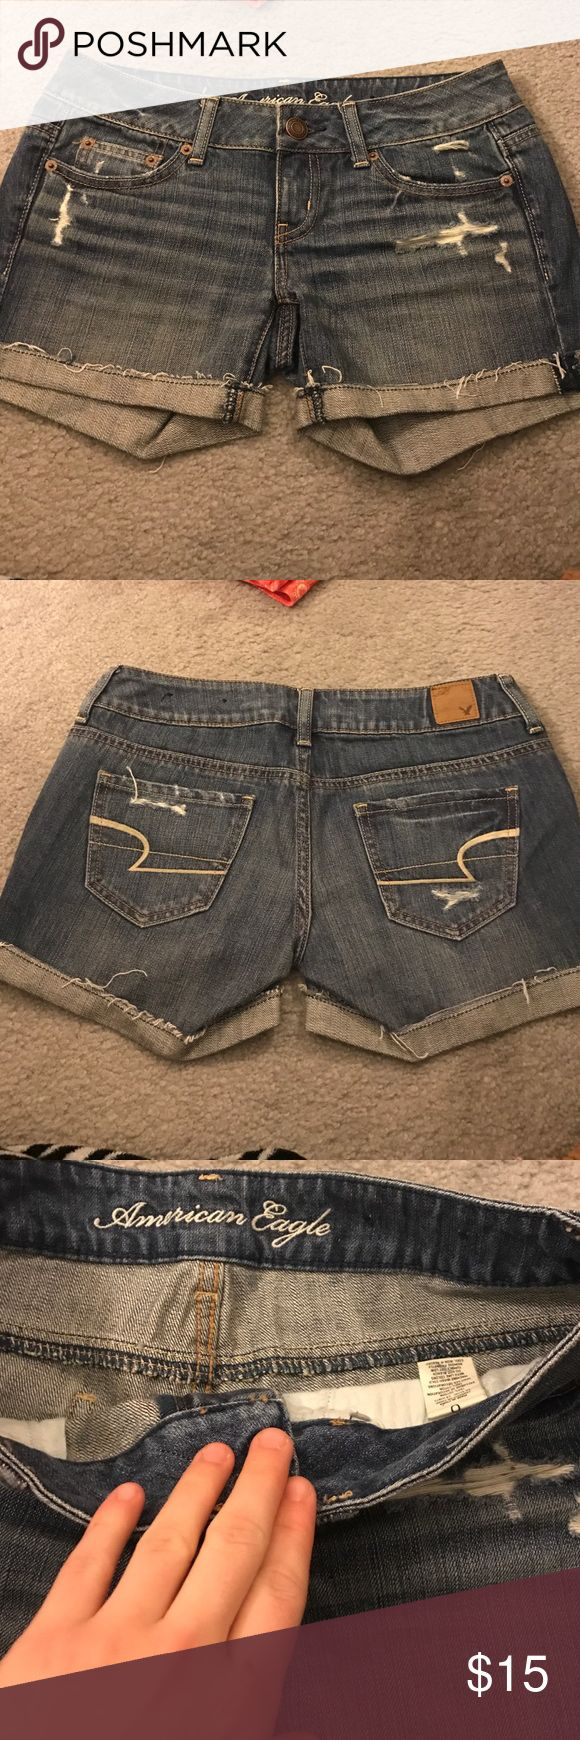 American Eagle jean shorts Brand new American Eagle jean shorts. No stains or holes other than the design of the shorts. American Eagle Outfitters Shorts Jean Shorts